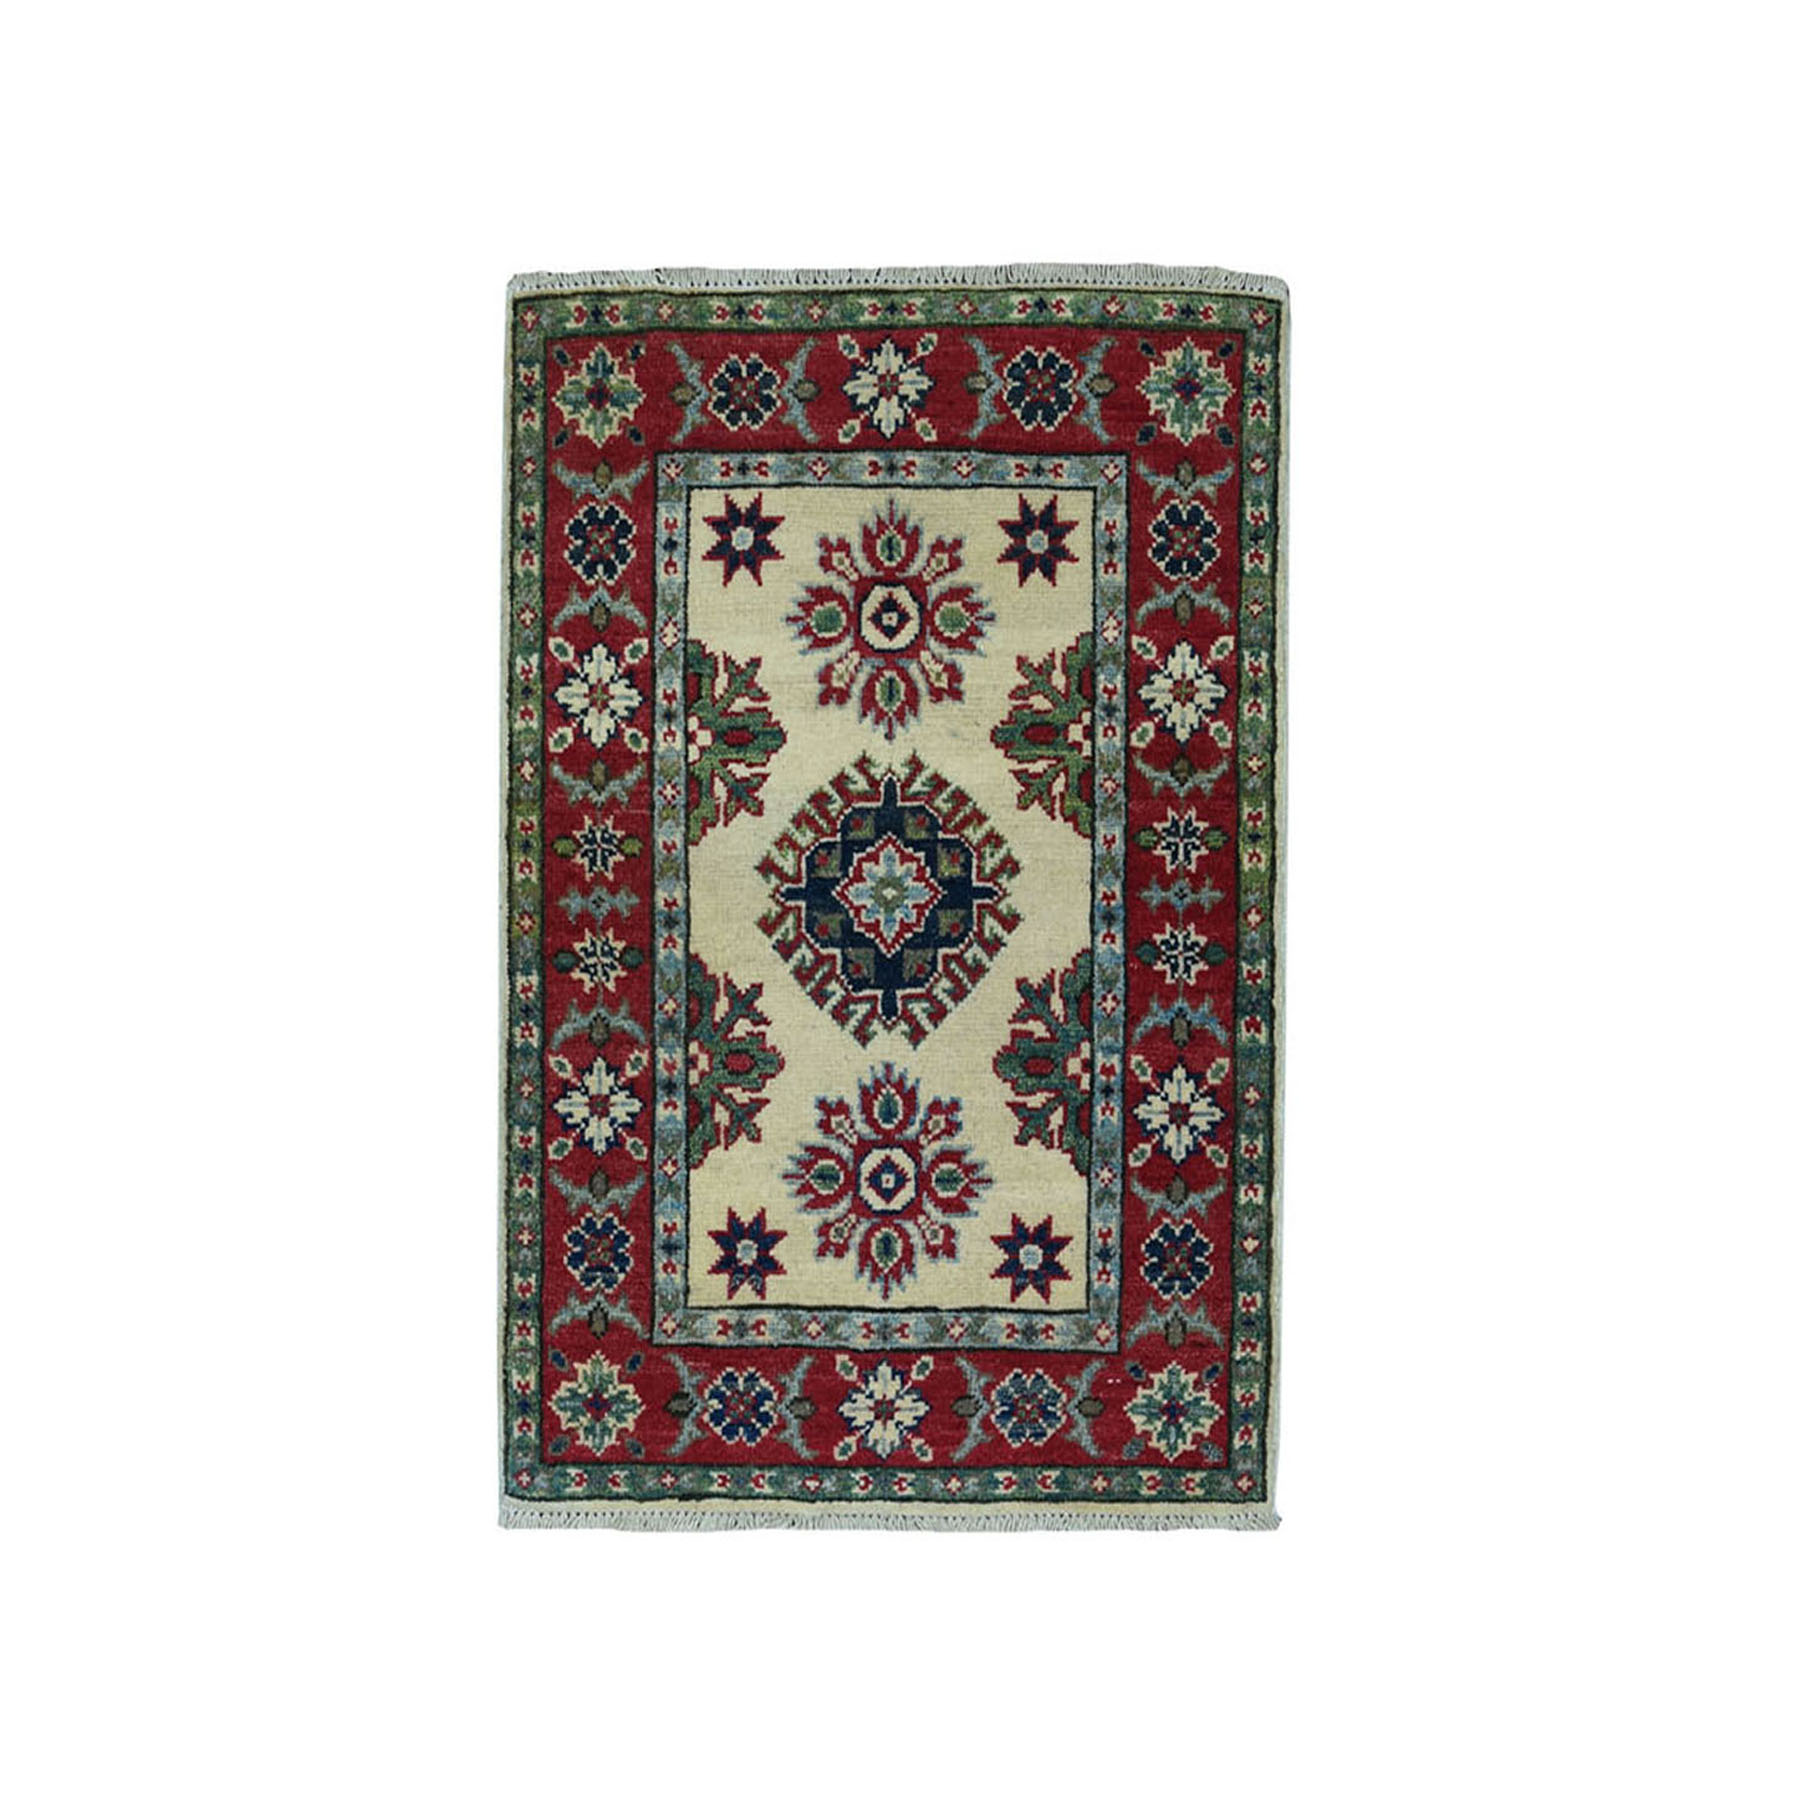 "2'x2'9"" Ivory Geometric Design Kazak Pure Wool Hand-Knotted Oriental Rug"